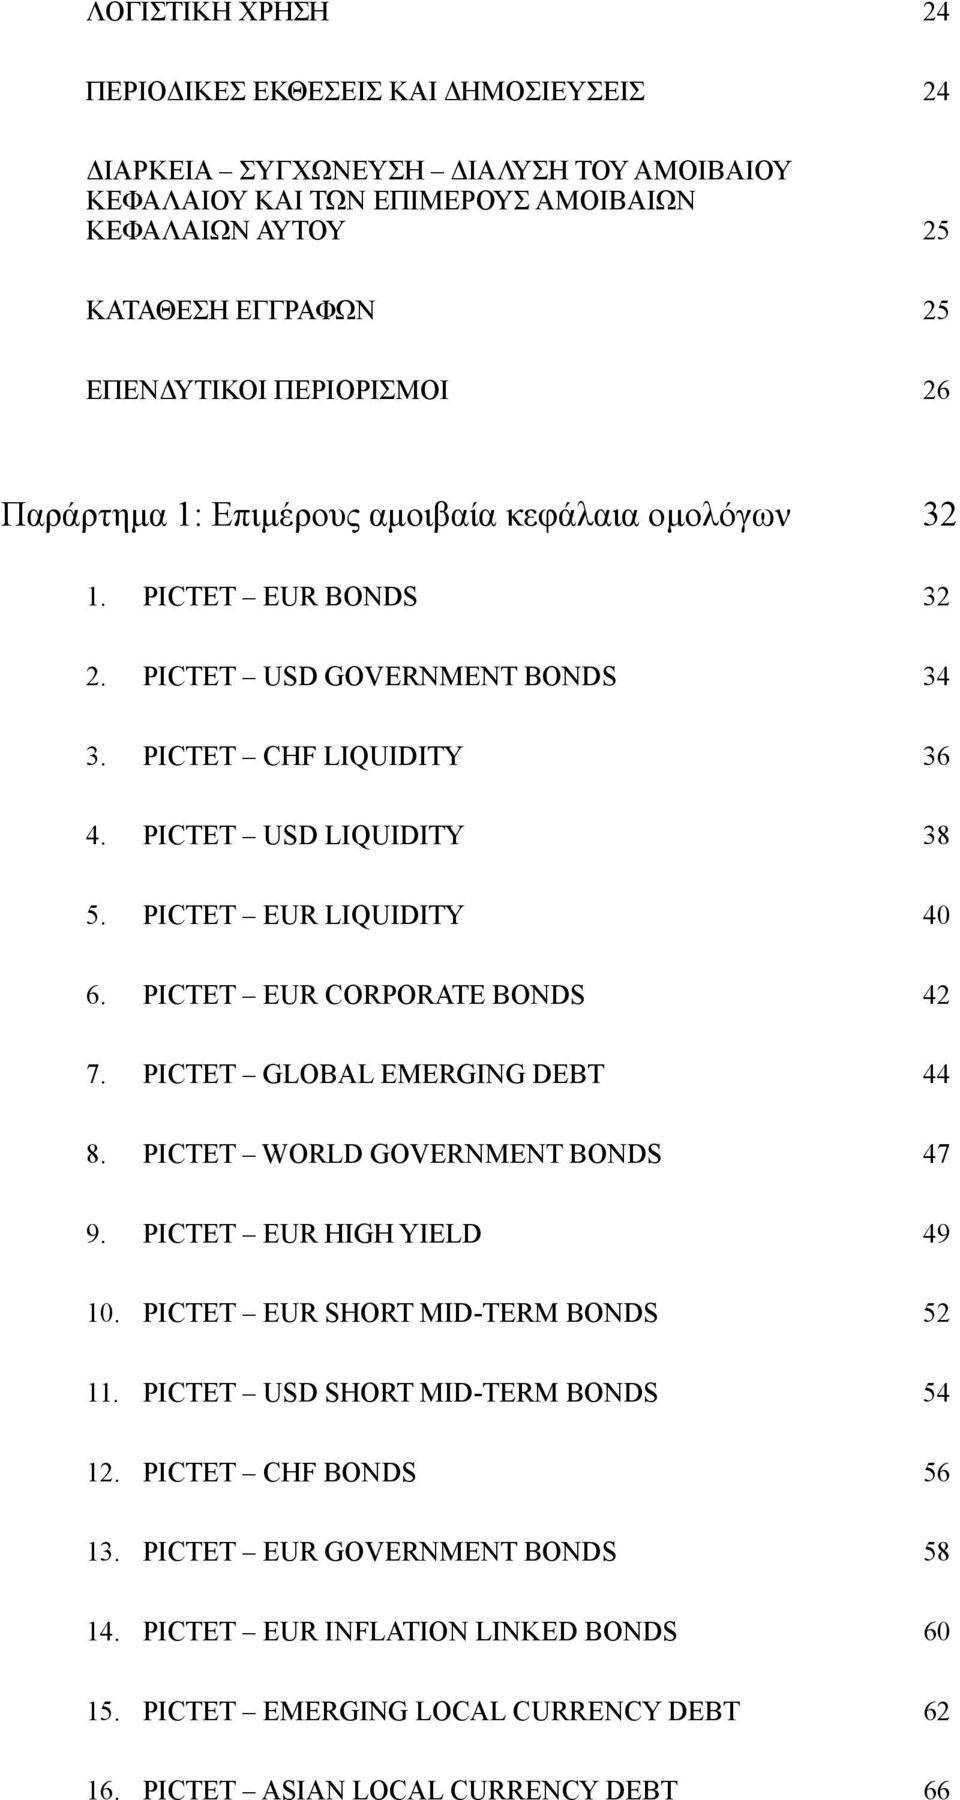 PICTET EUR LIQUIDITY 40 6. PICTET EUR CORPORATE BONDS 42 7. PICTET GLOBAL EMERGING DEBT 44 8. PICTET WORLD GOVERNMENT BONDS 47 9. PICTET EUR HIGH YIELD 49 10. PICTET EUR SHORT MID-TERM BONDS 52 11.